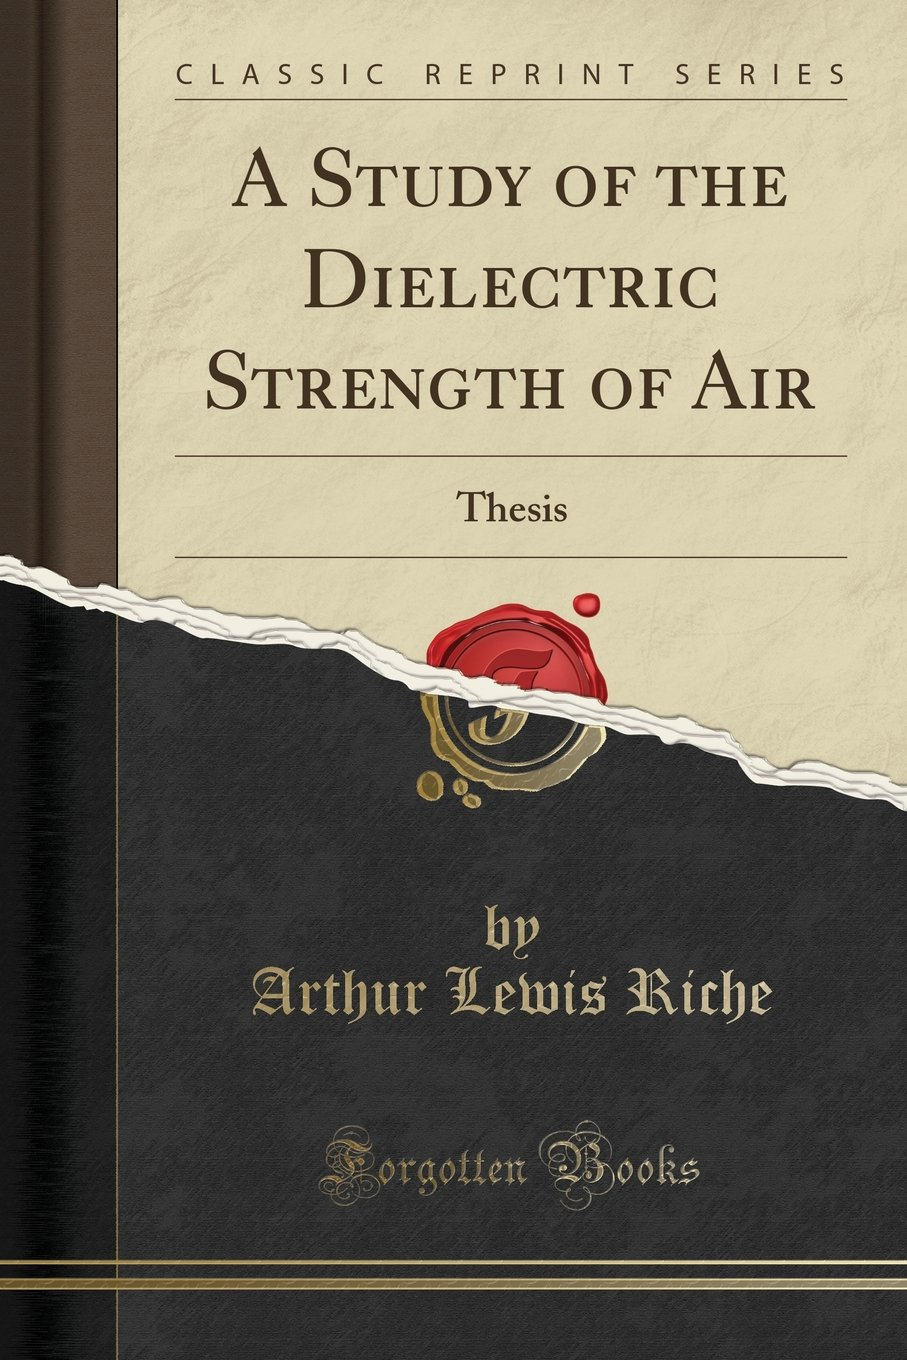 A Study of the Dielectric Strength of Air: Thesis (Classic Reprint) ebook